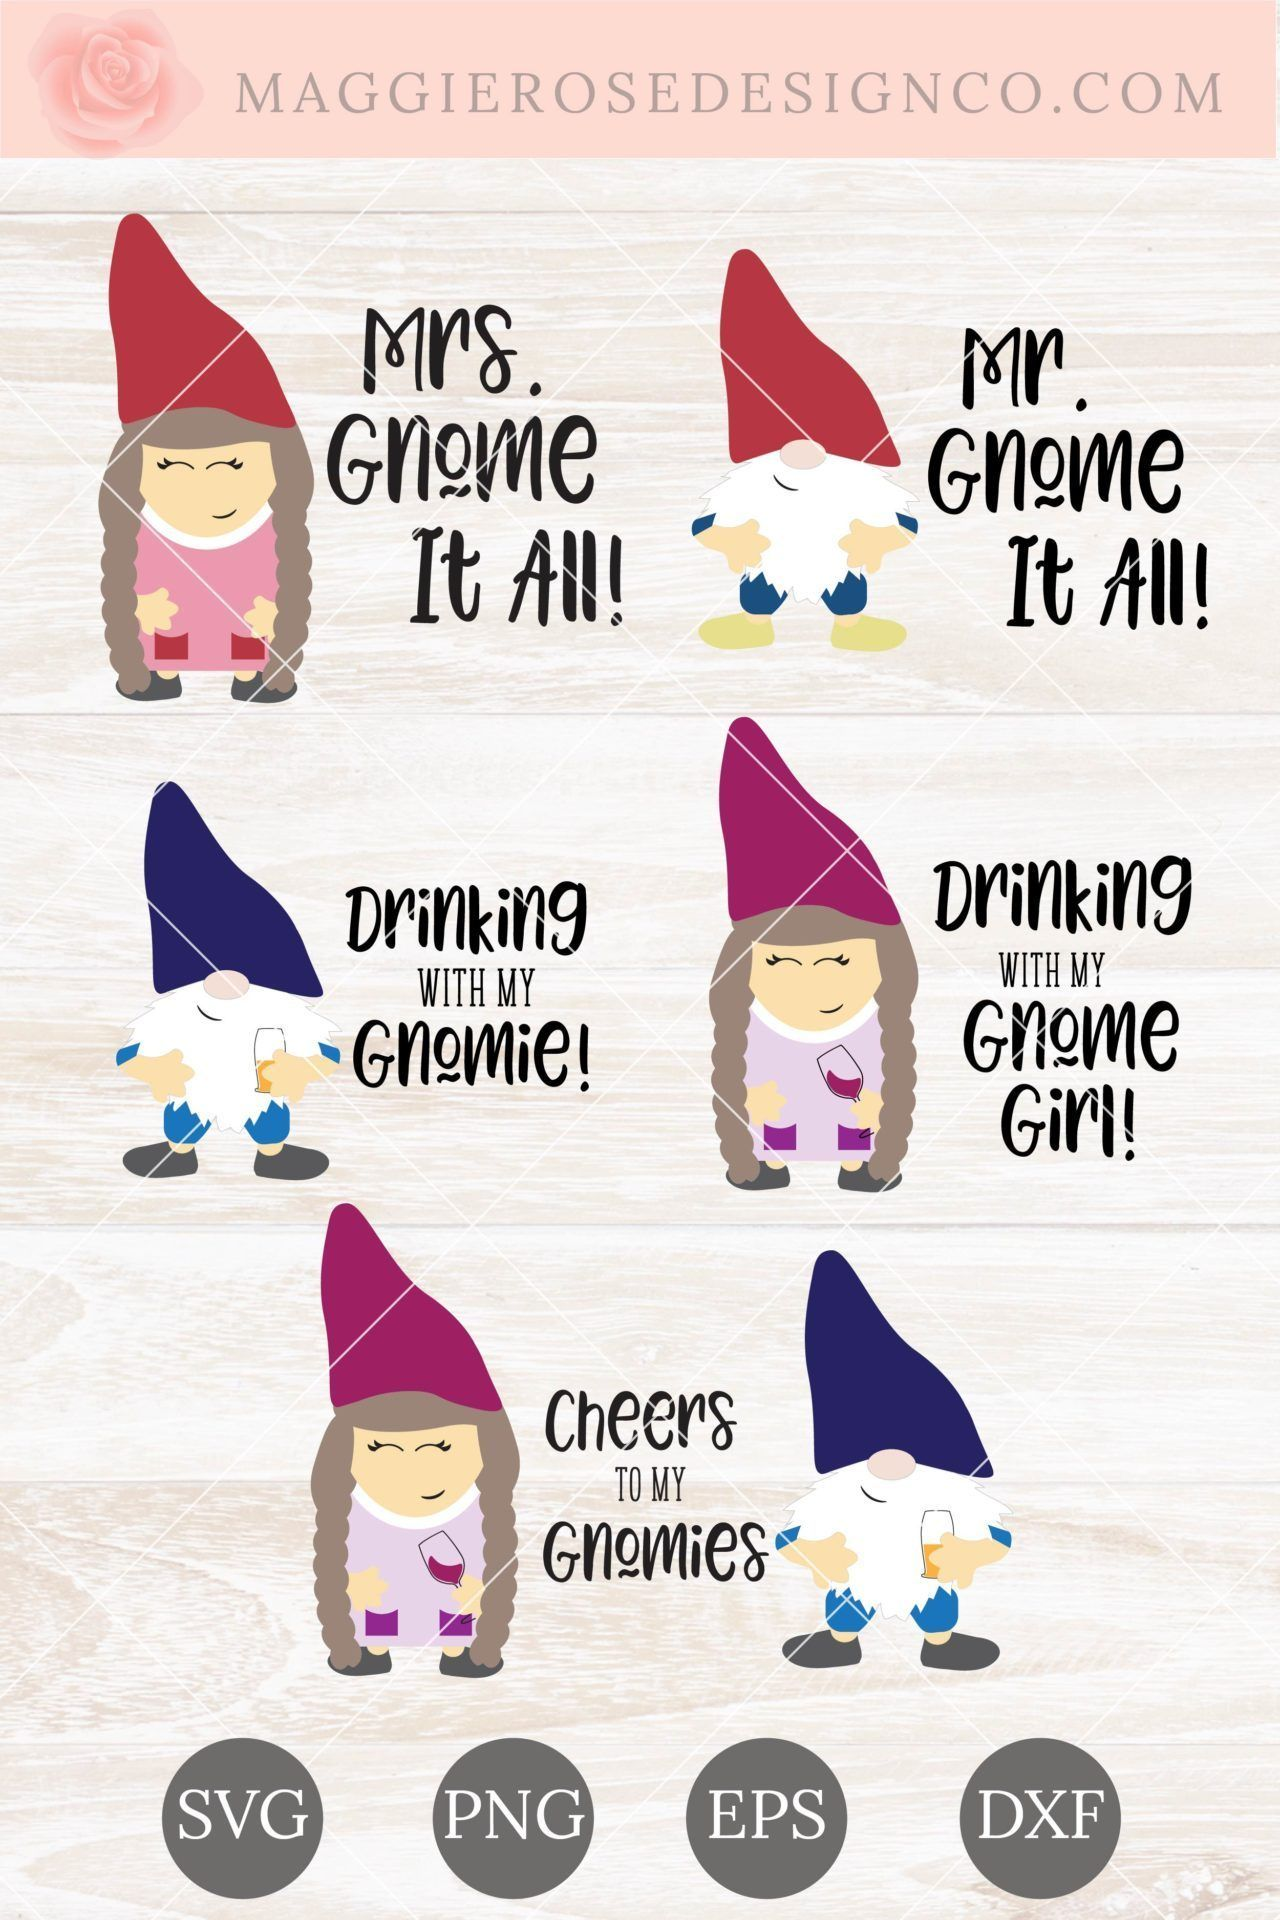 Download Free Gnome SVG Bundle + 5 Amazing DIY Gnome Crafts ...